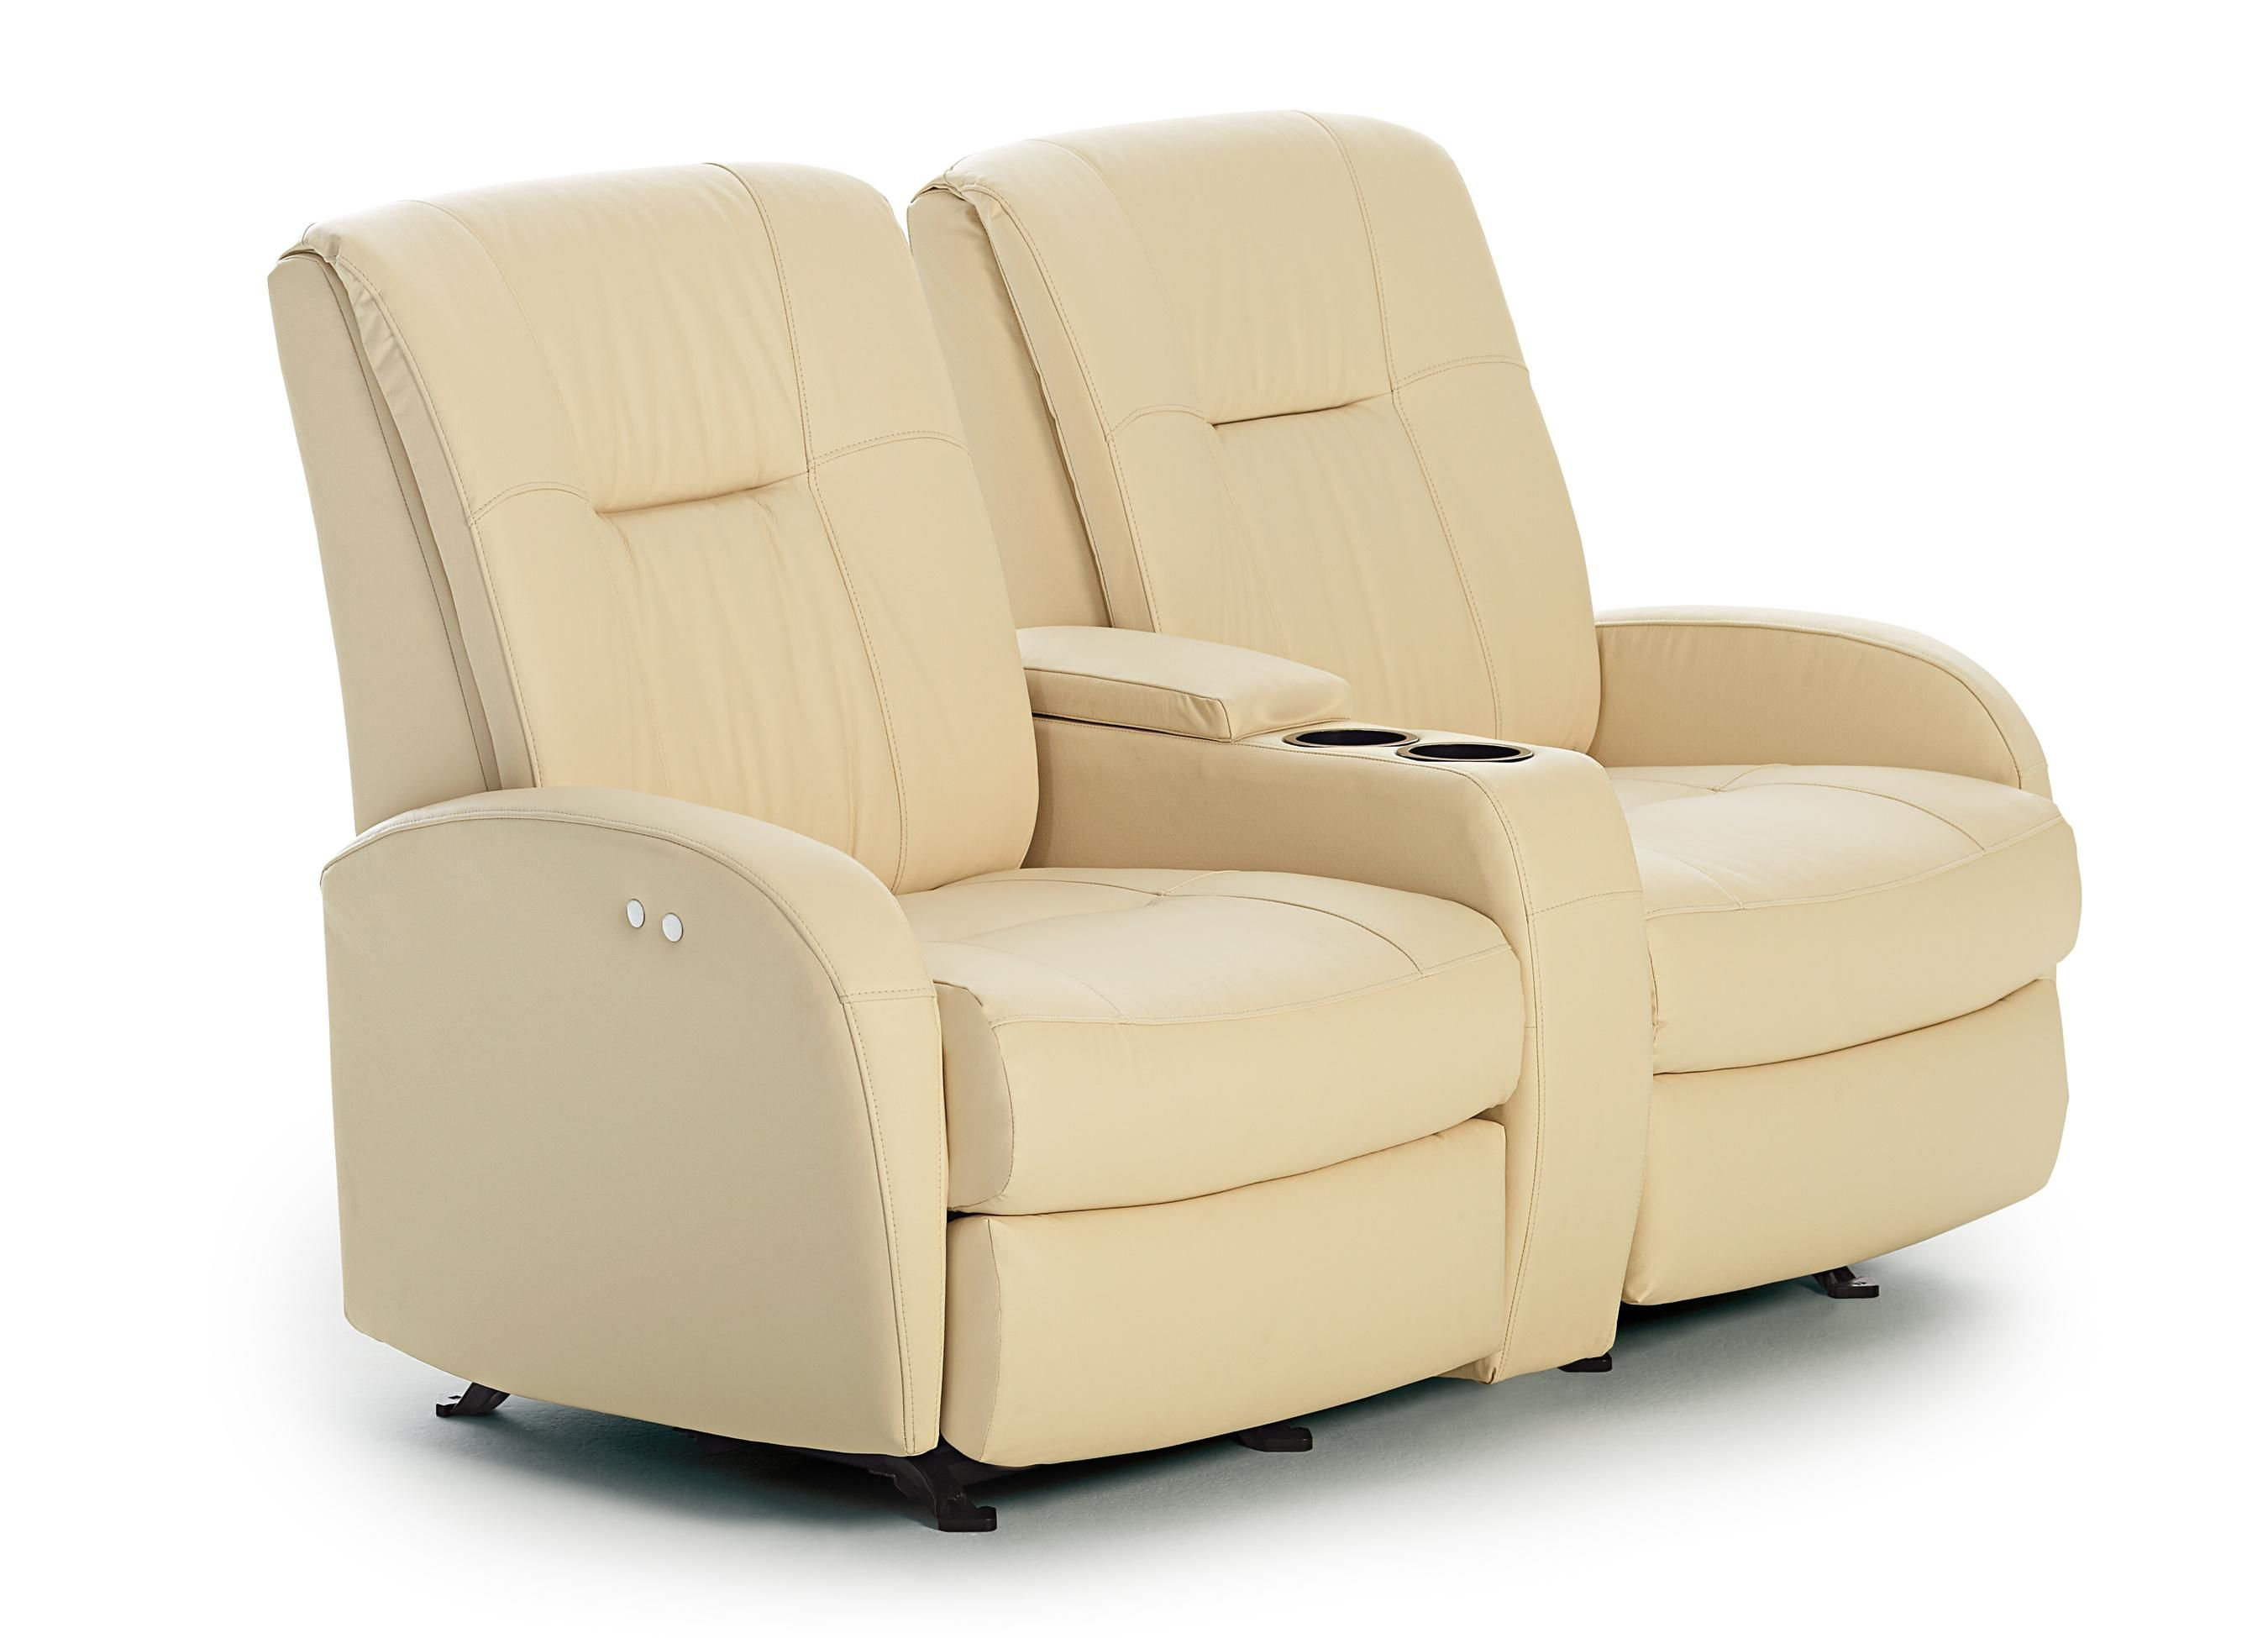 small reclining loveseat Contemporary Space Saver  : 1ab045b735083eec8861bd0d19456332 from www.pinterest.com size 2700 x 1950 jpeg 194kB